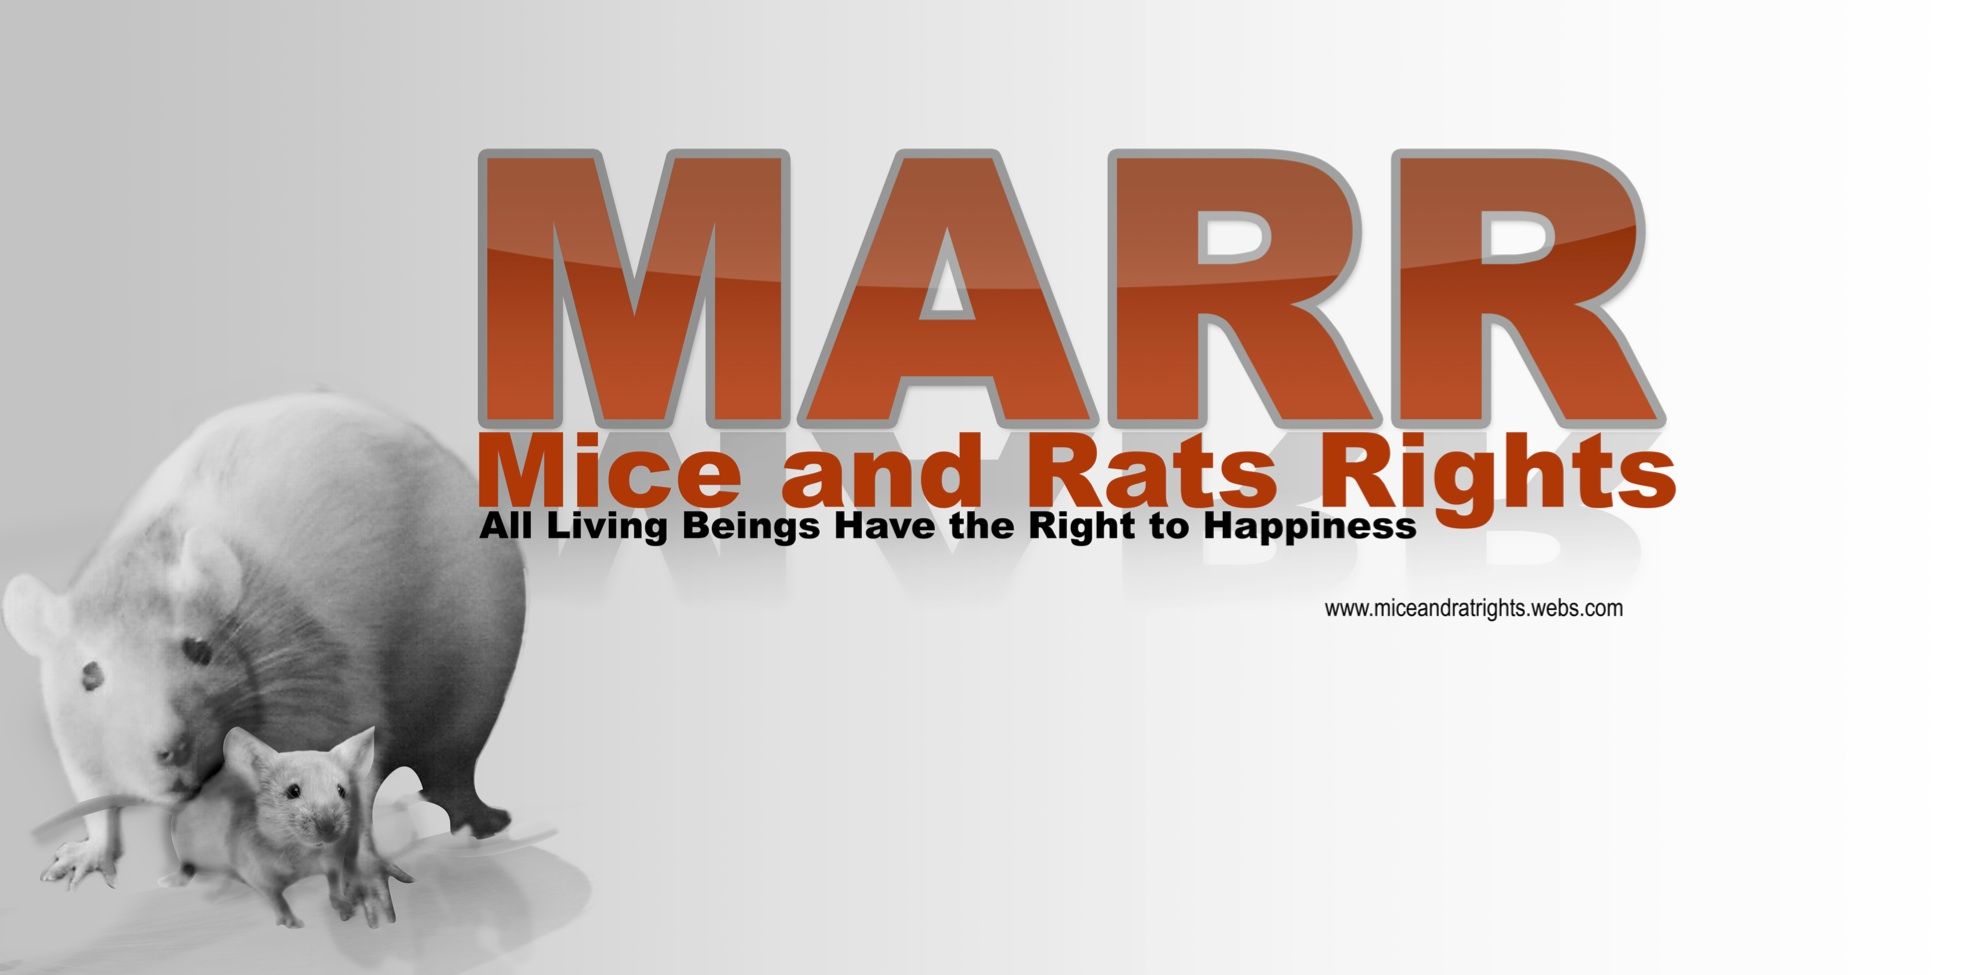 Mice and Rats Rights